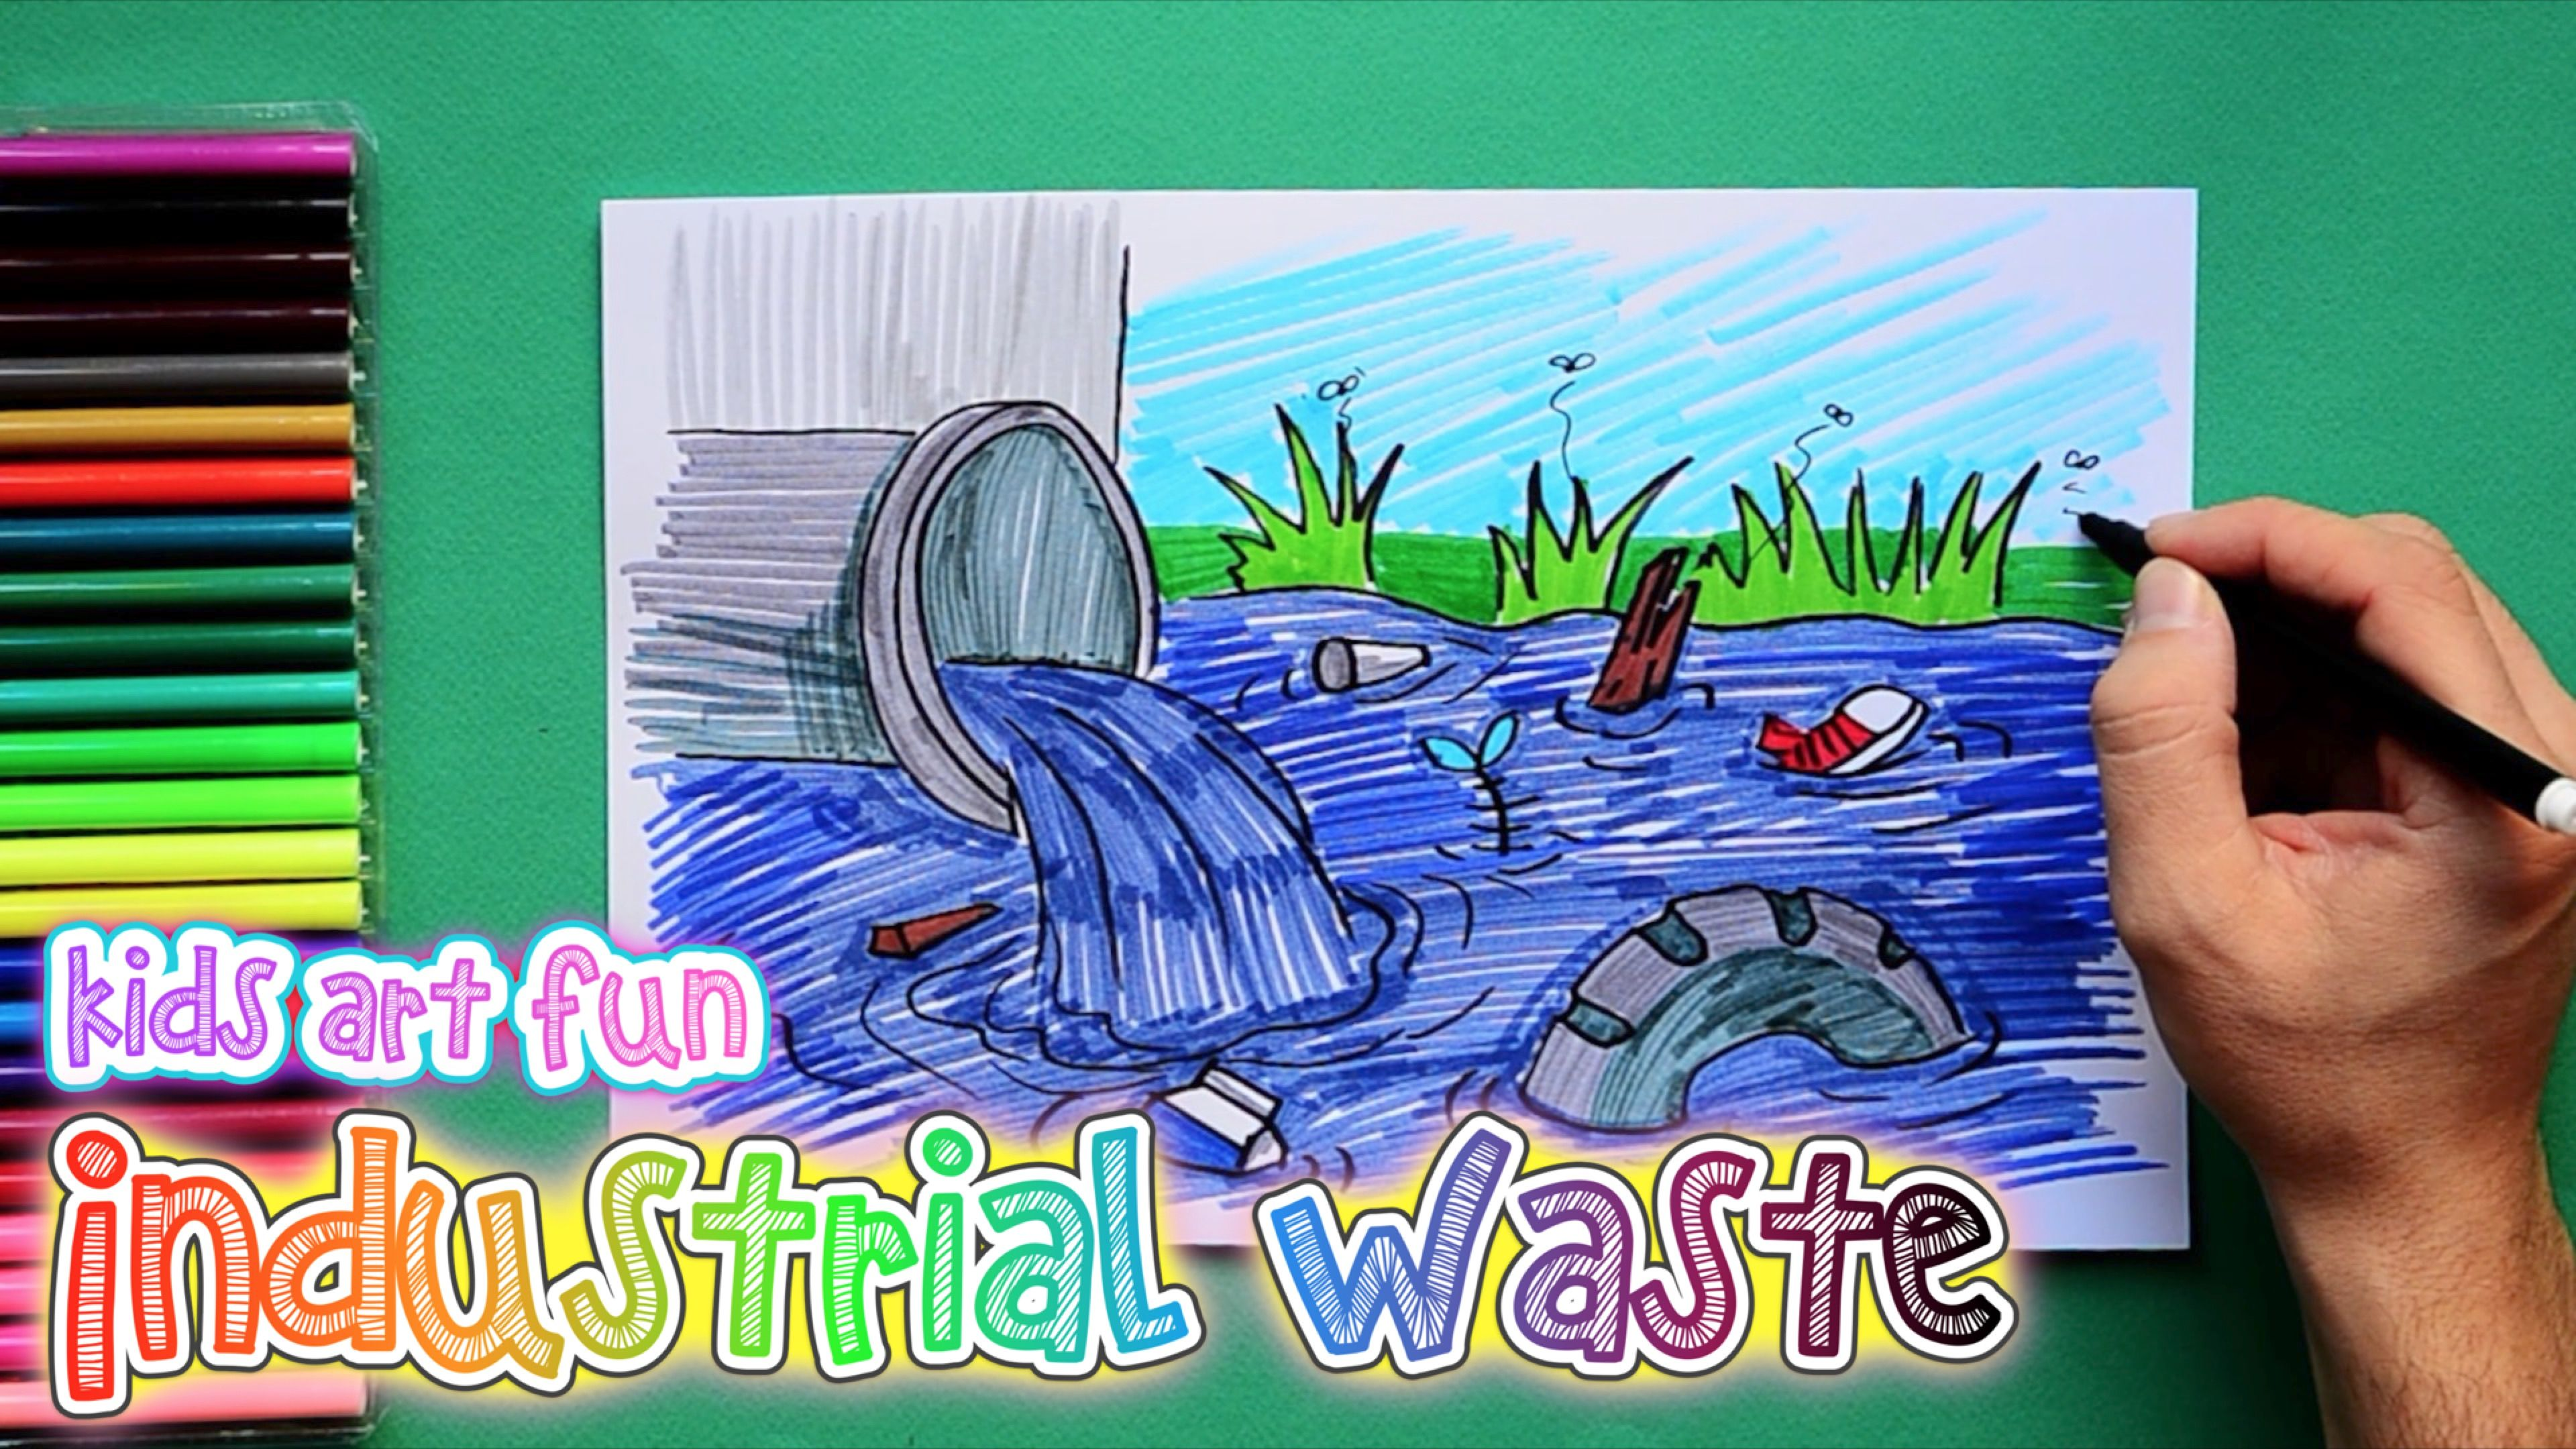 How To Draw And Color Industrial Waste Or Sewage Effluents Art